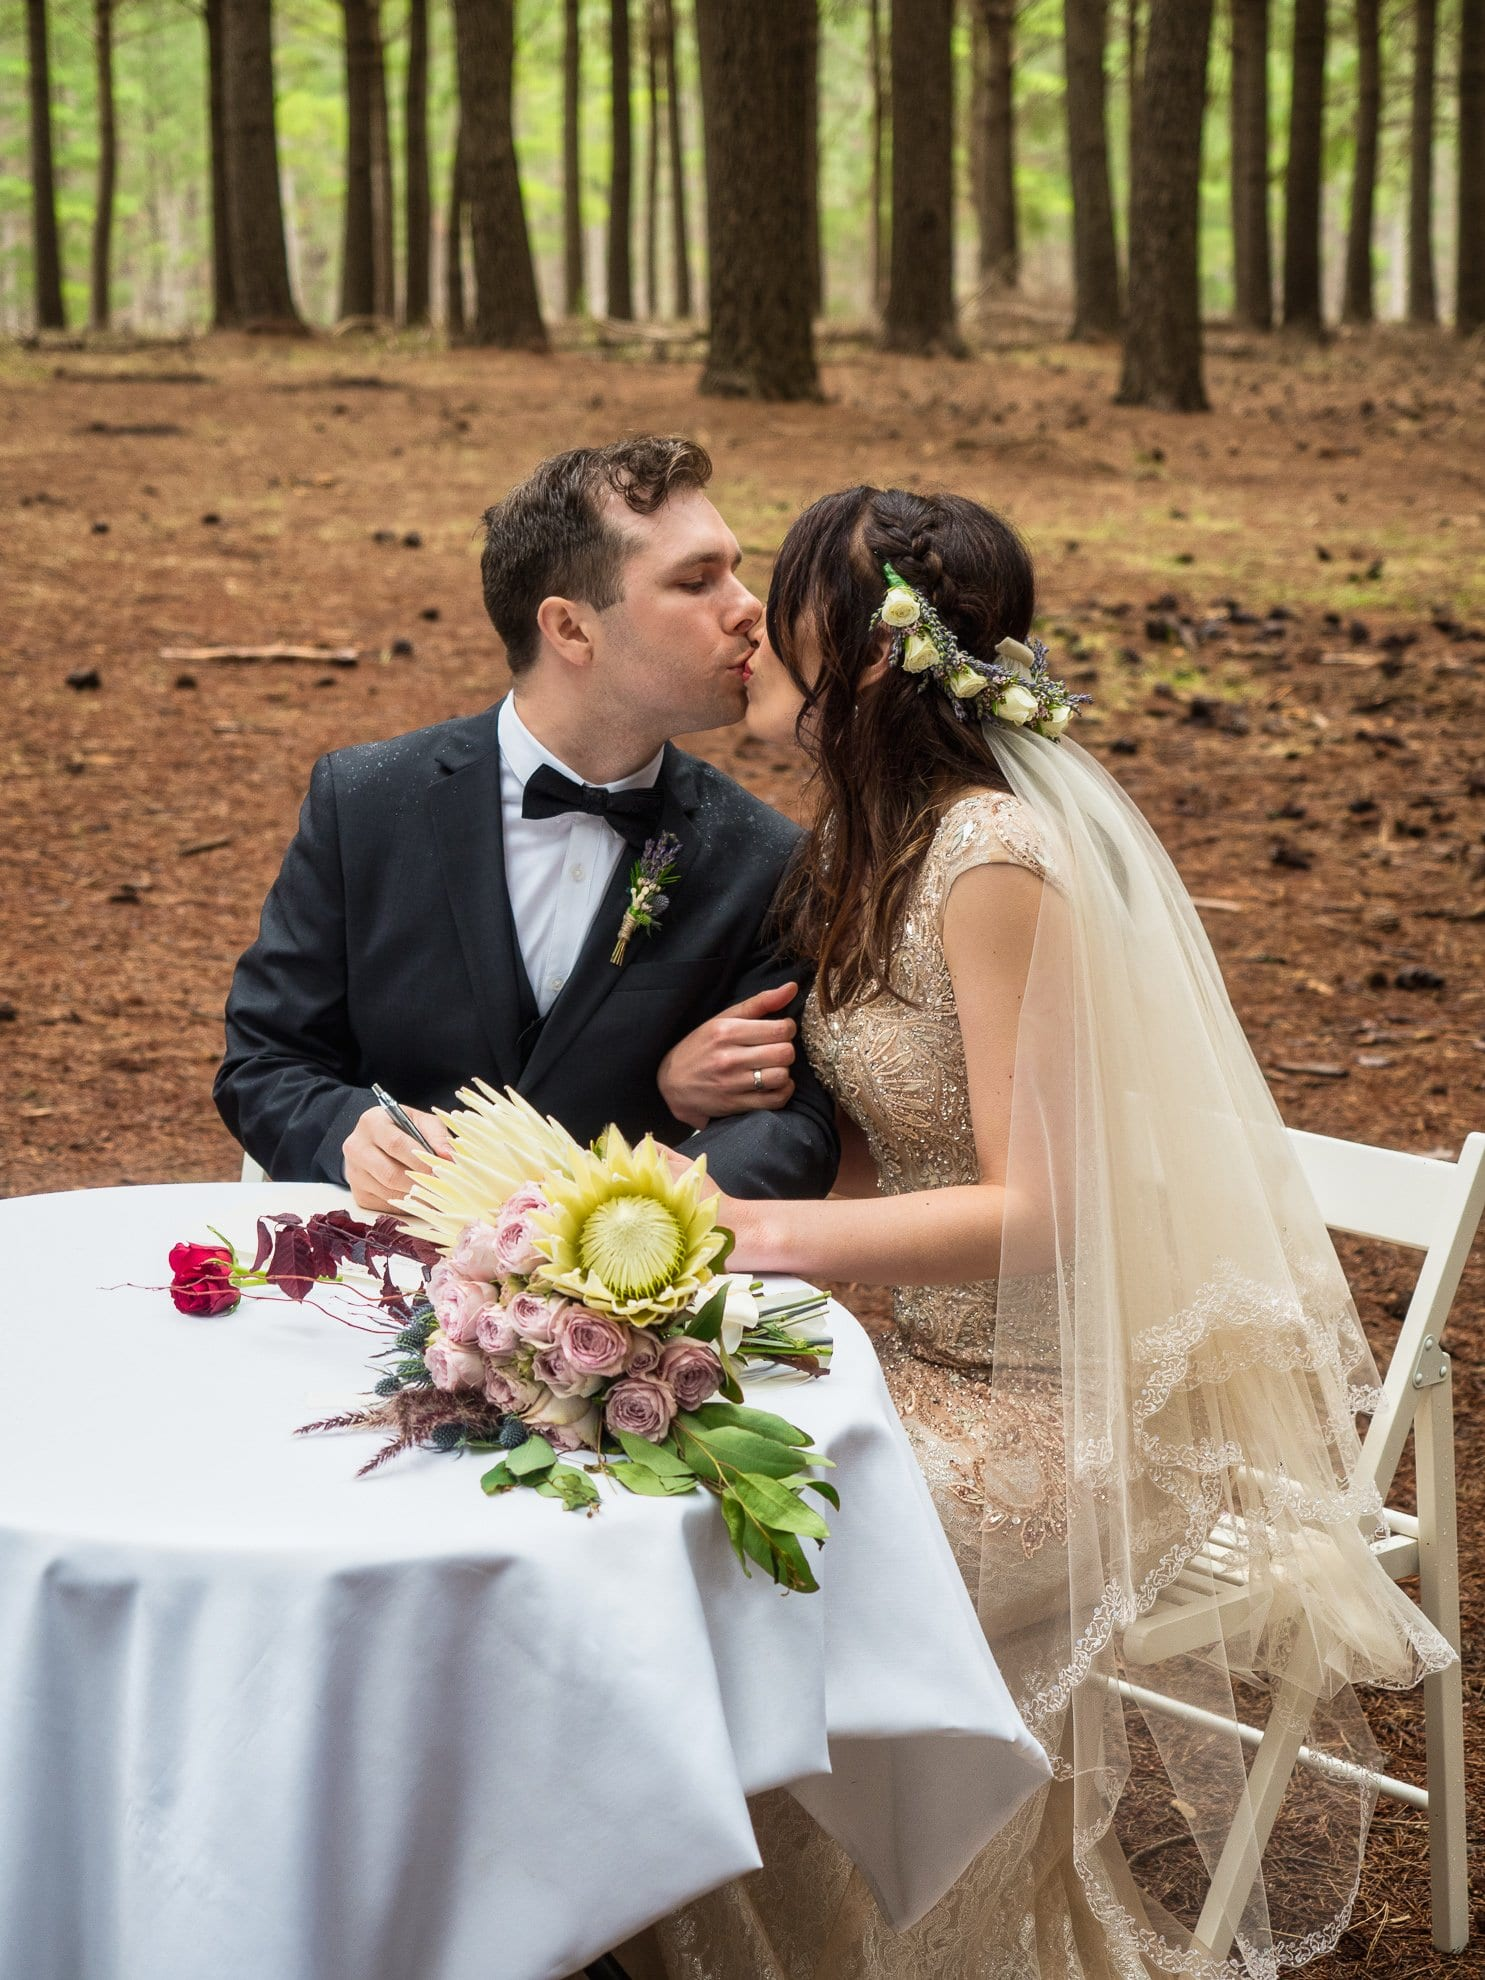 Kuitpo Forest Couple Kissing